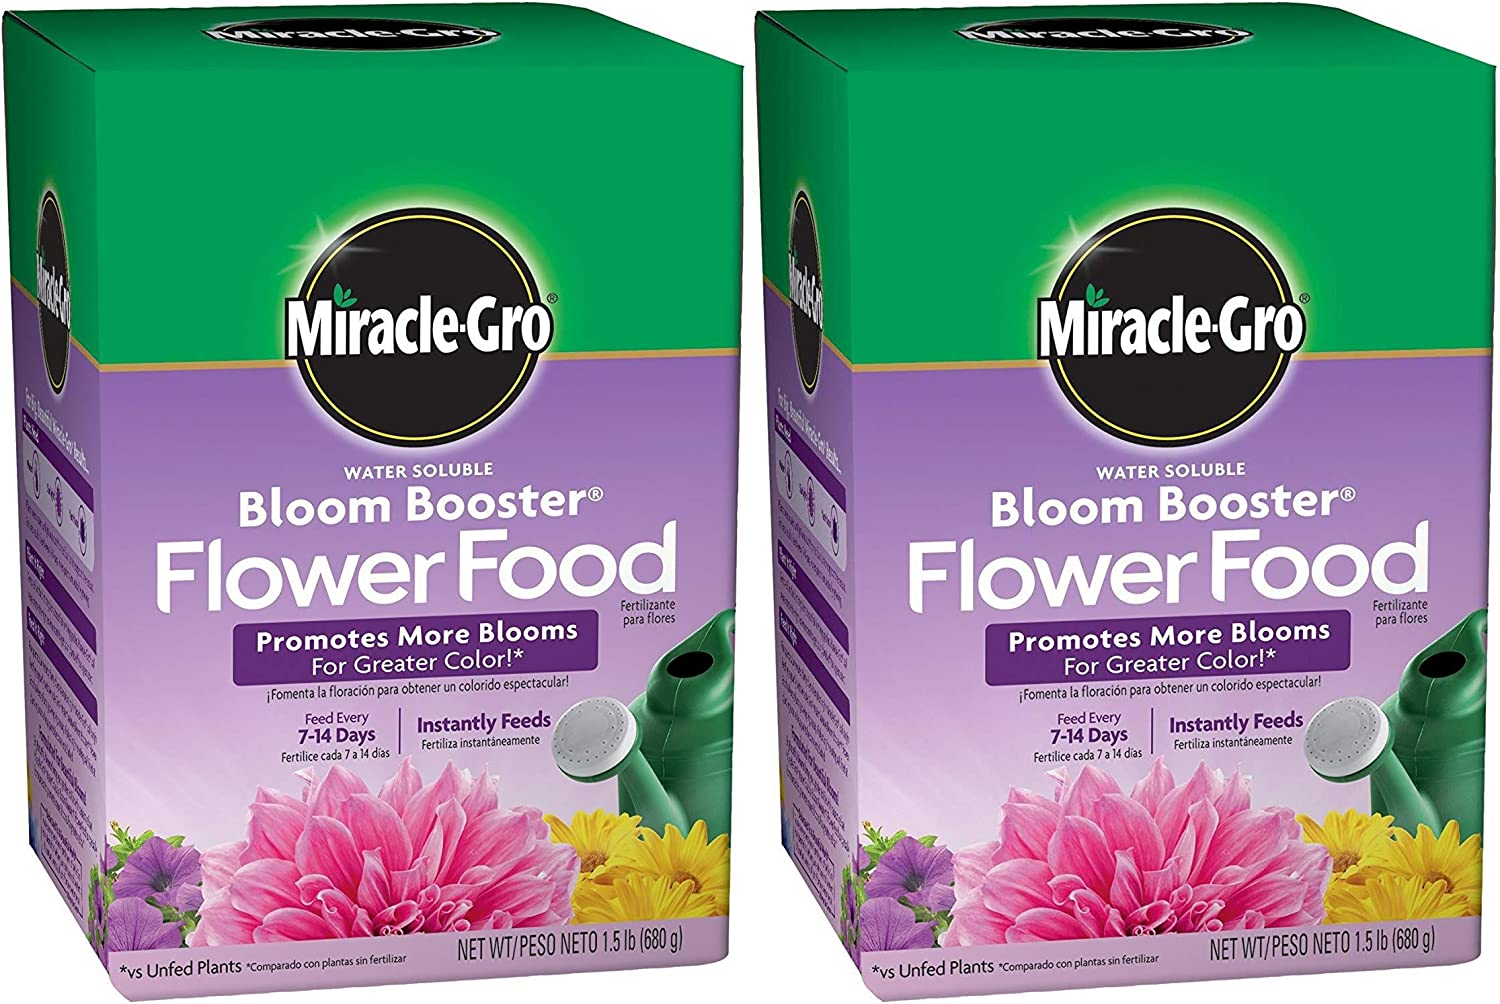 Miracle-Gro Water Soluble Bloom Booster Flower Food Pack of 2